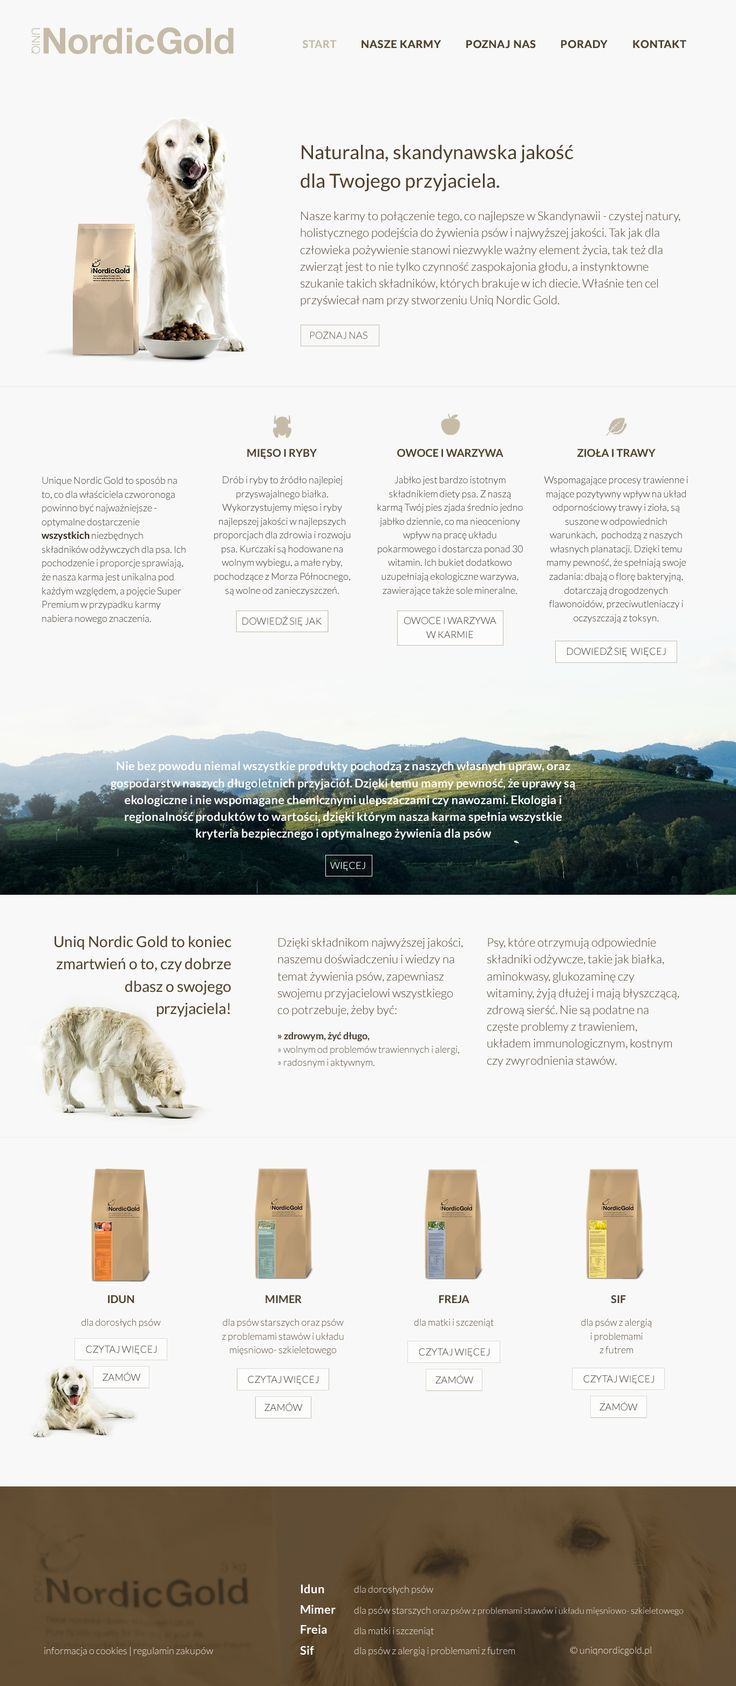 AIAC Agency for UniqNordicGold, new dog food :) |http://uniqnordicgold.pl | http://aiac.pl  #websitedesign #dogfood #dogs #uniqnordicgold #nordicgold #aiac